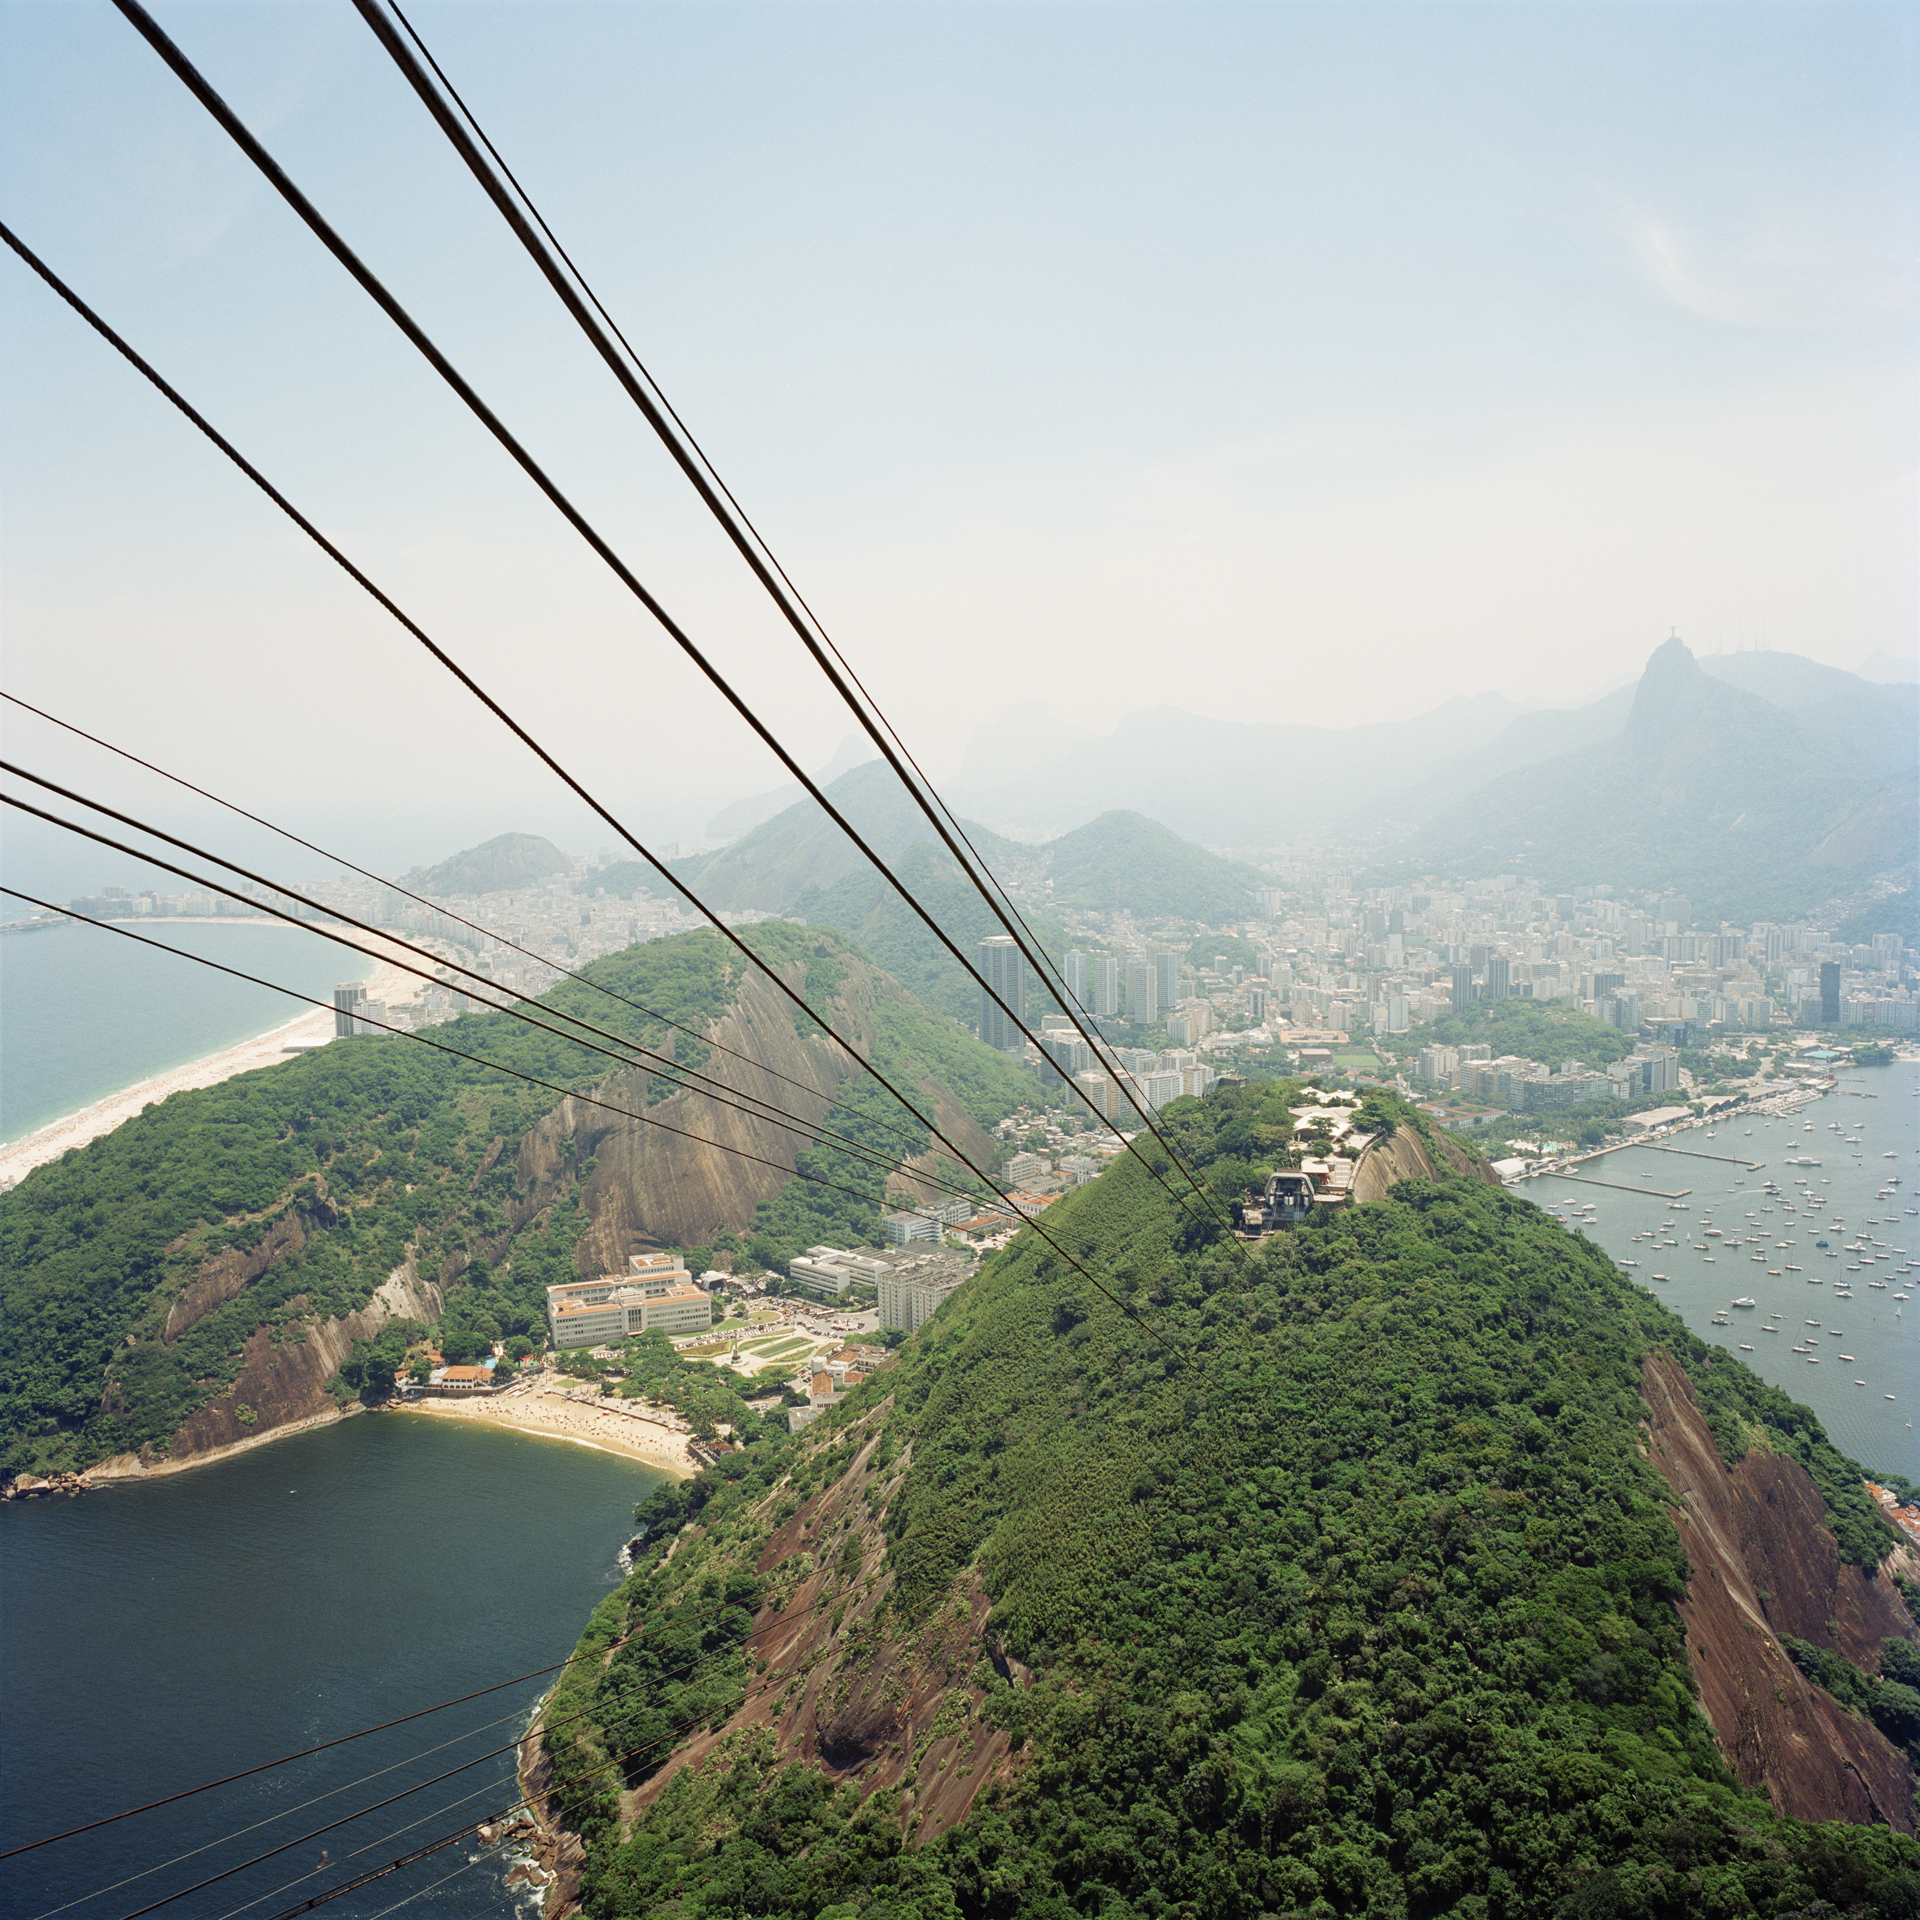 View from the top level of the Sugar Loaf Cable Car Station.